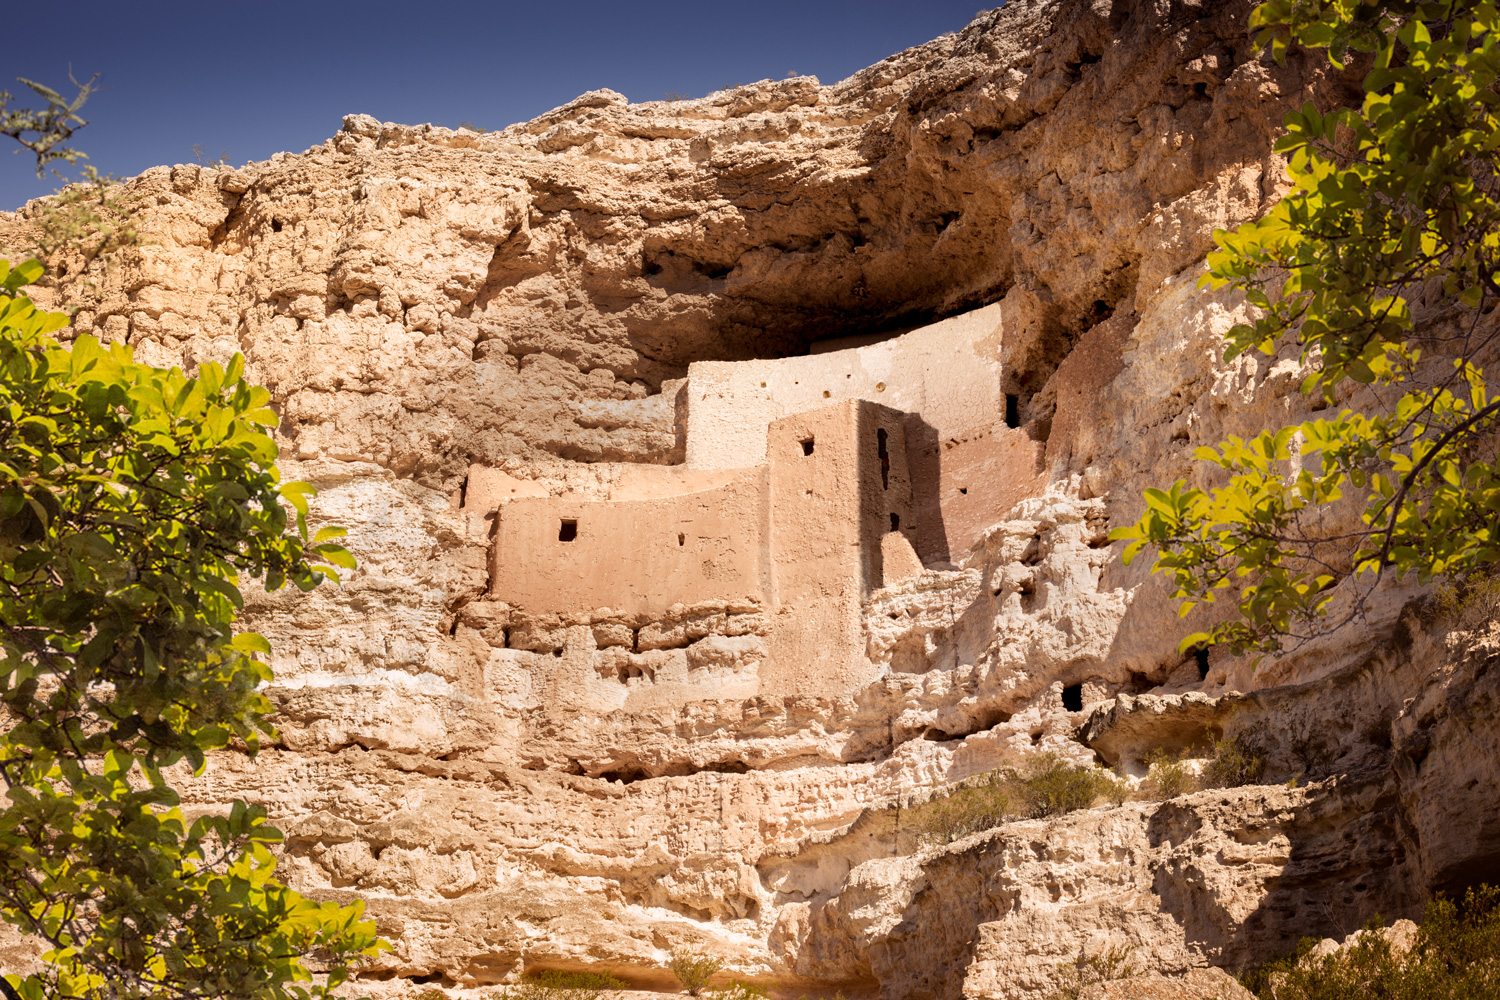 Montezuma's Castle, Camp Verde, Arizona, USA